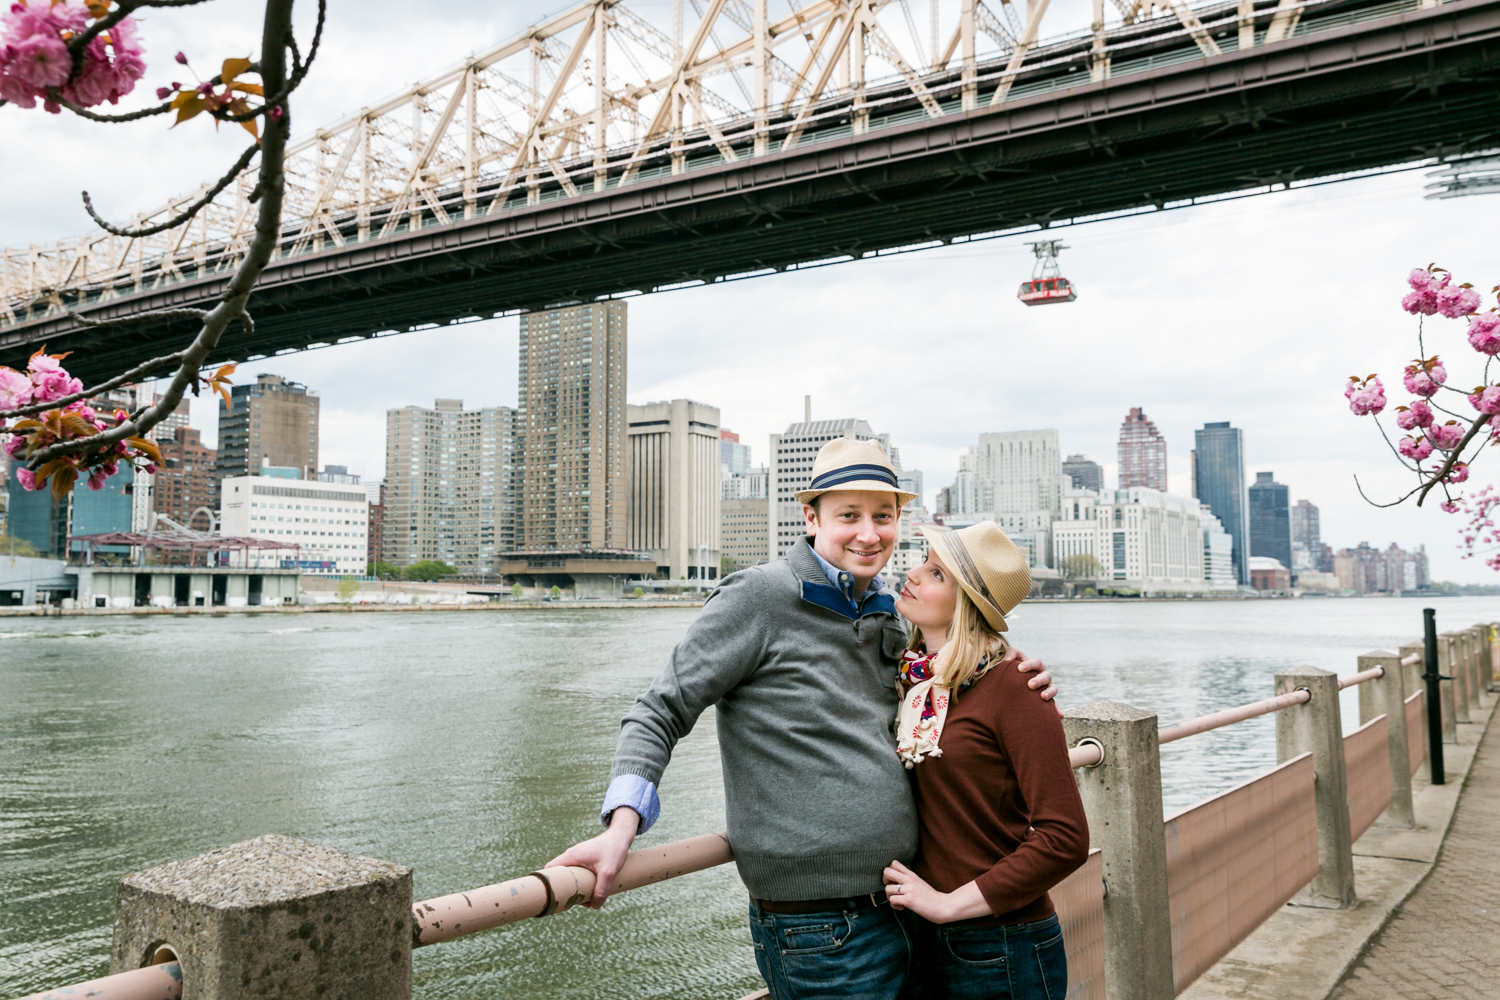 Couple against railing with Roosevelt Island tram in background